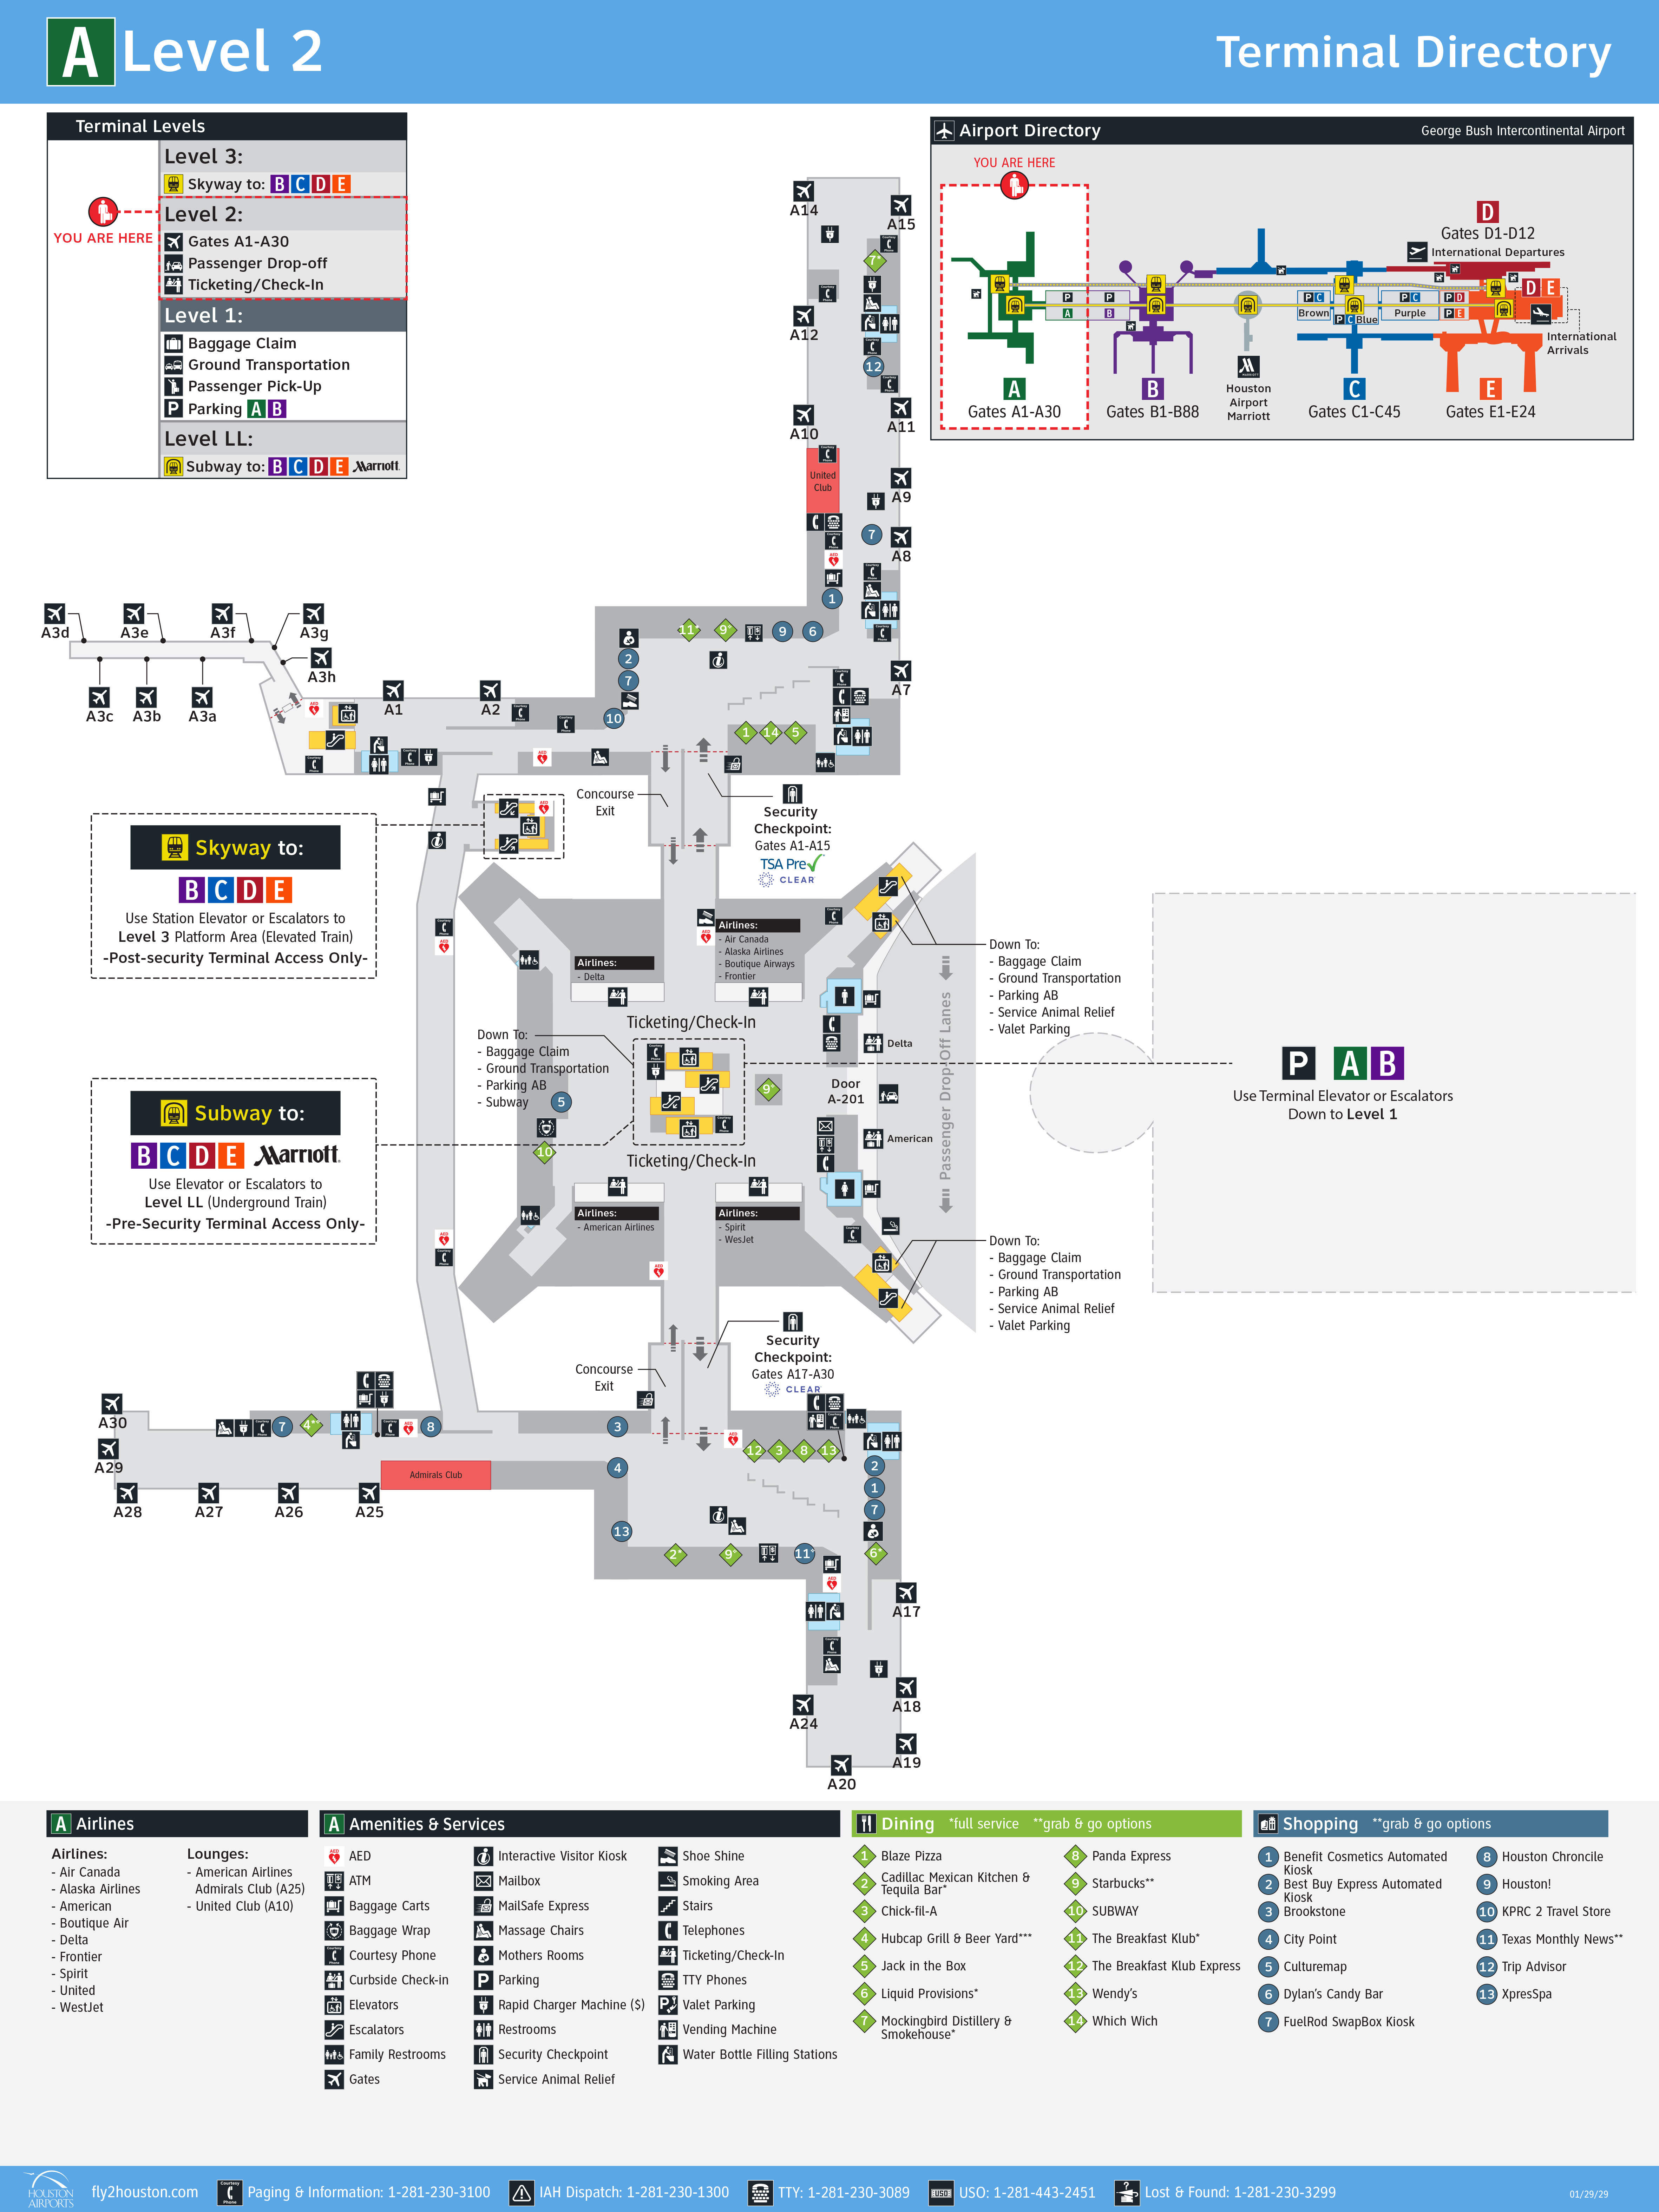 George Bush Intercontinental Airport Map - Printable Terminal Maps ...